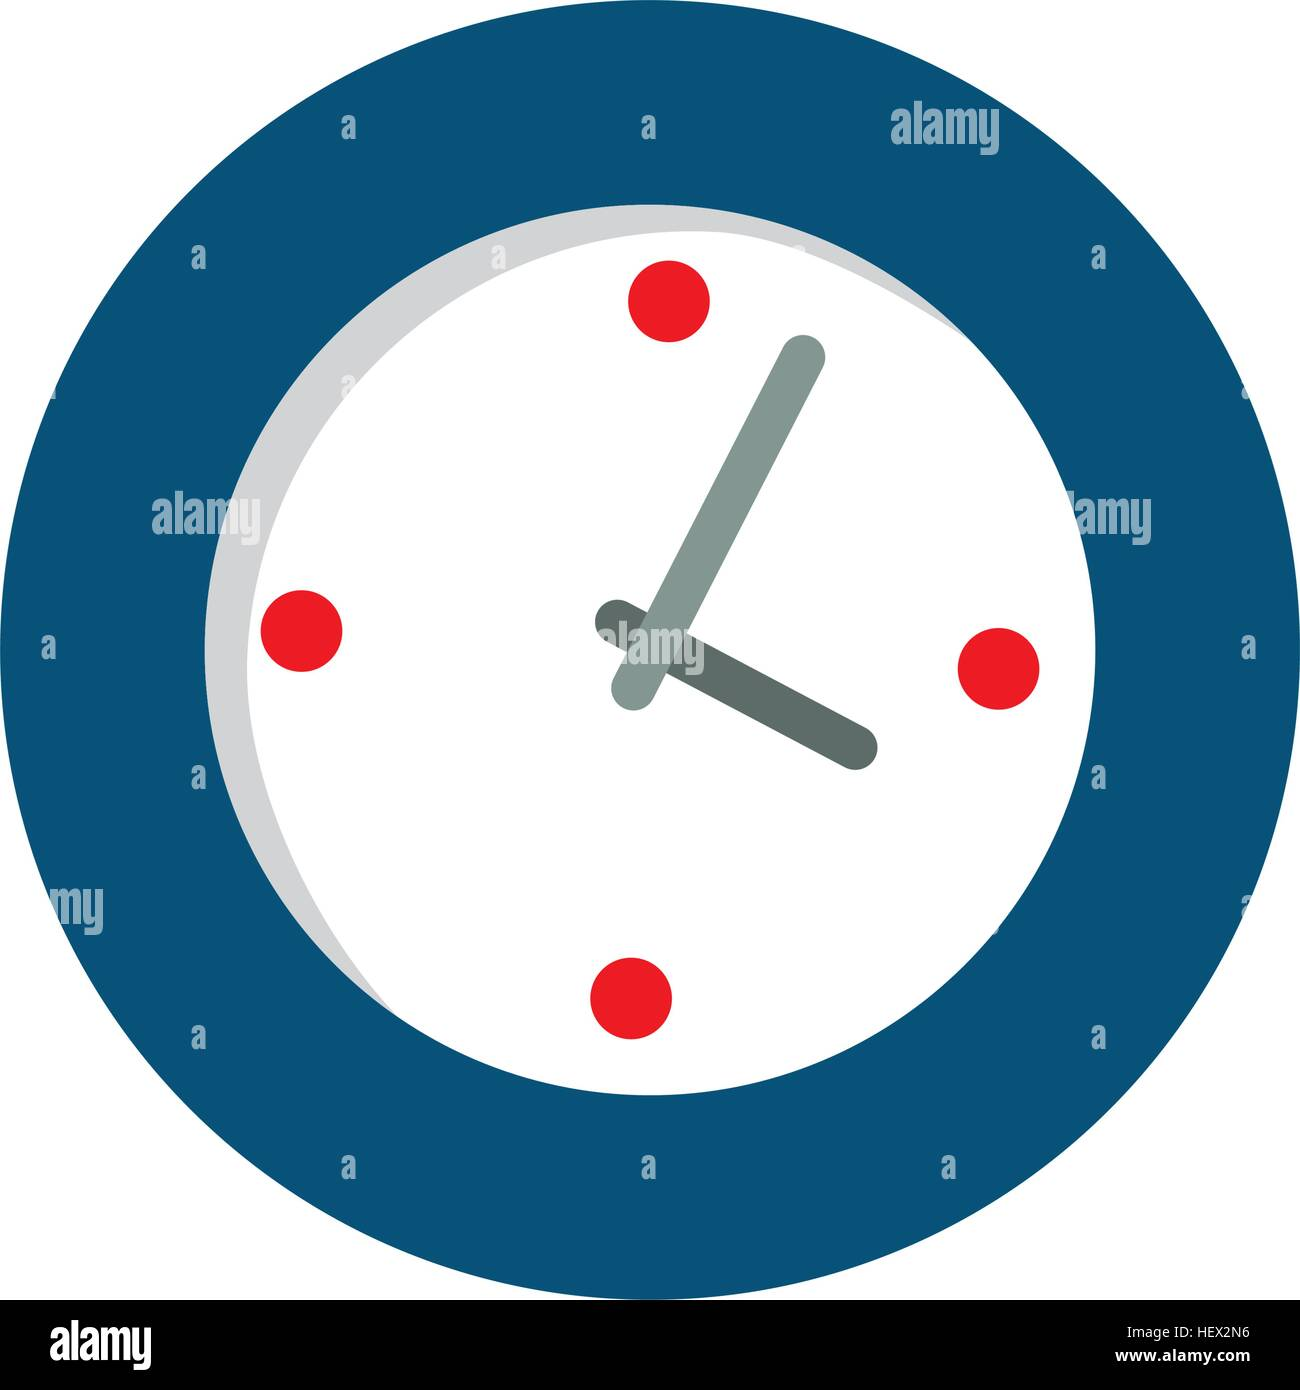 Wall watch clock stock vector art illustration vector image wall watch clock amipublicfo Choice Image